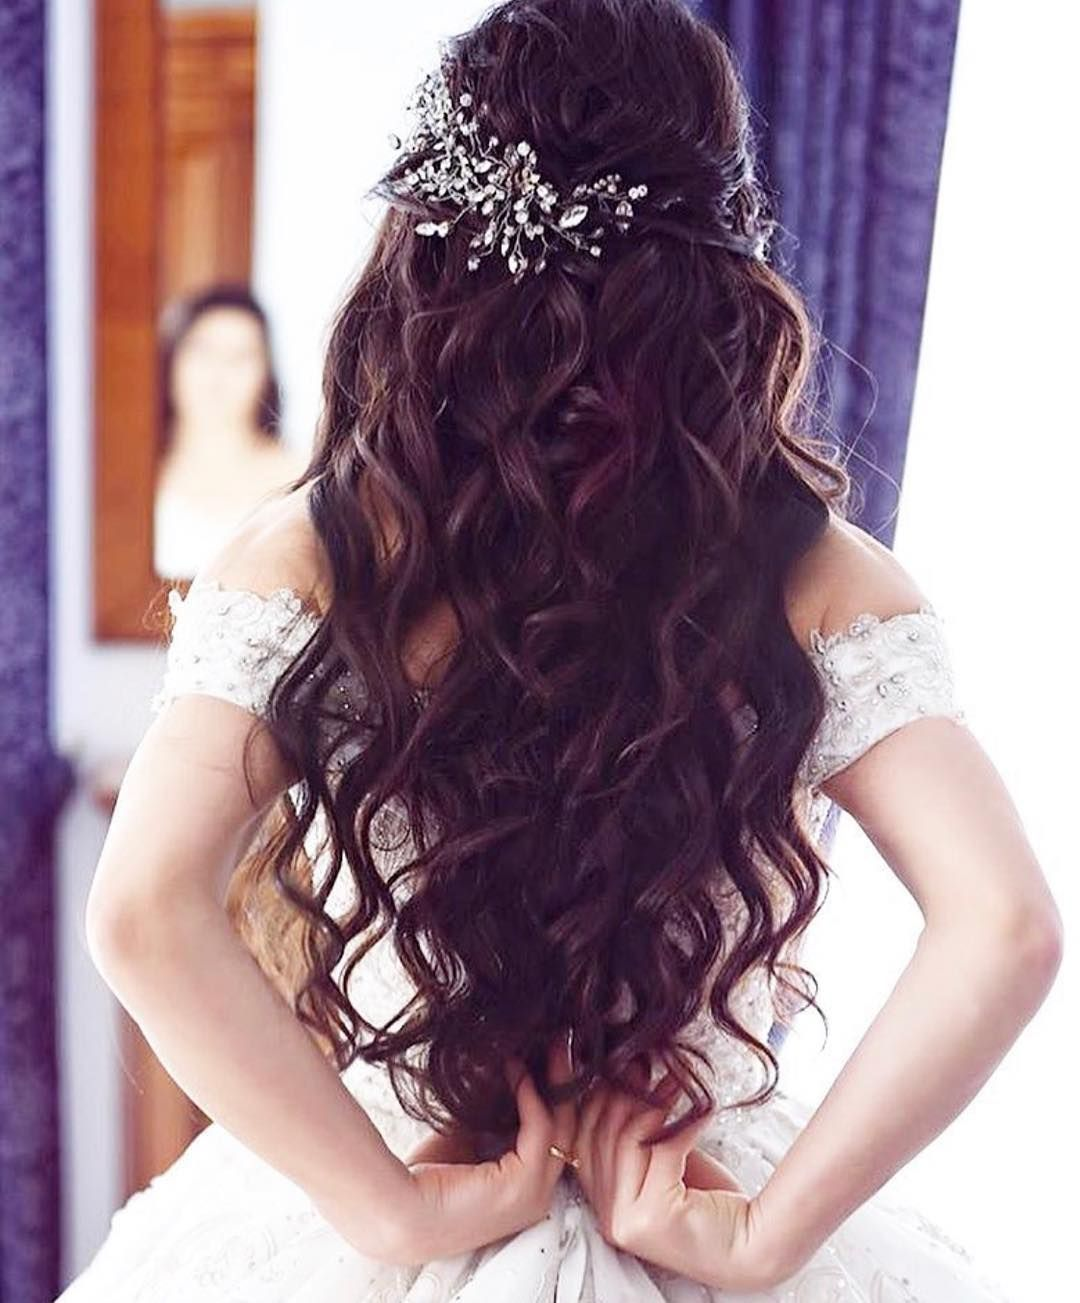 Pin By Dou On Rooms Engagement Hairstyles Bridal Hair Buns Bridal Hair Inspiration